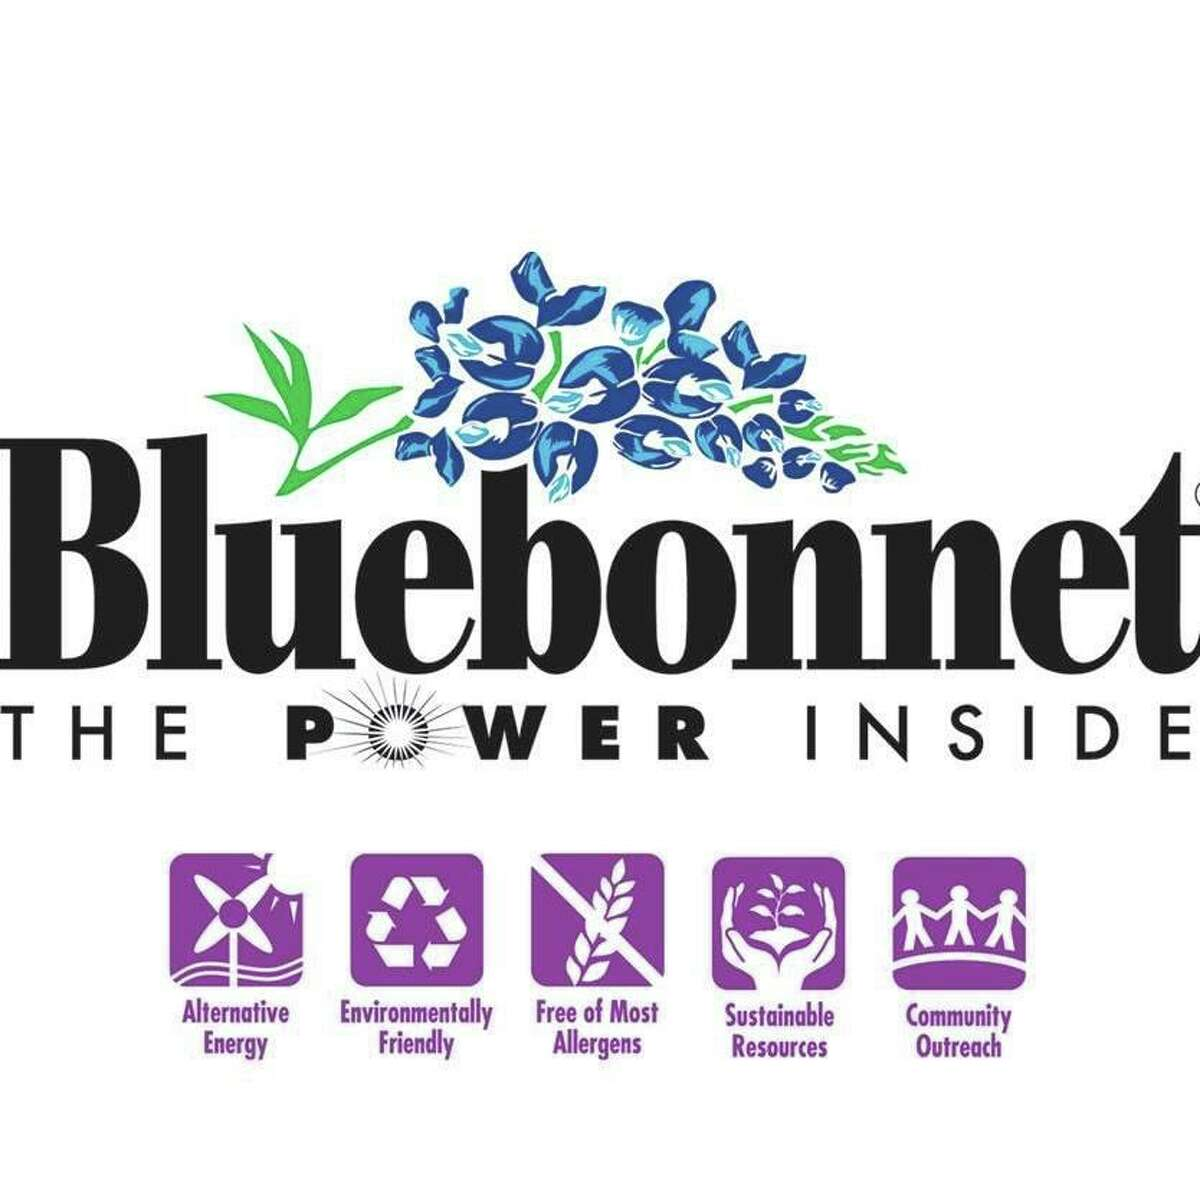 Sugar Land City Council recently approved a tax abatement agreement with Bluebonnet Nutrition Corporation, securing $18 million in capital investment to its Sugar Land Business Park location.